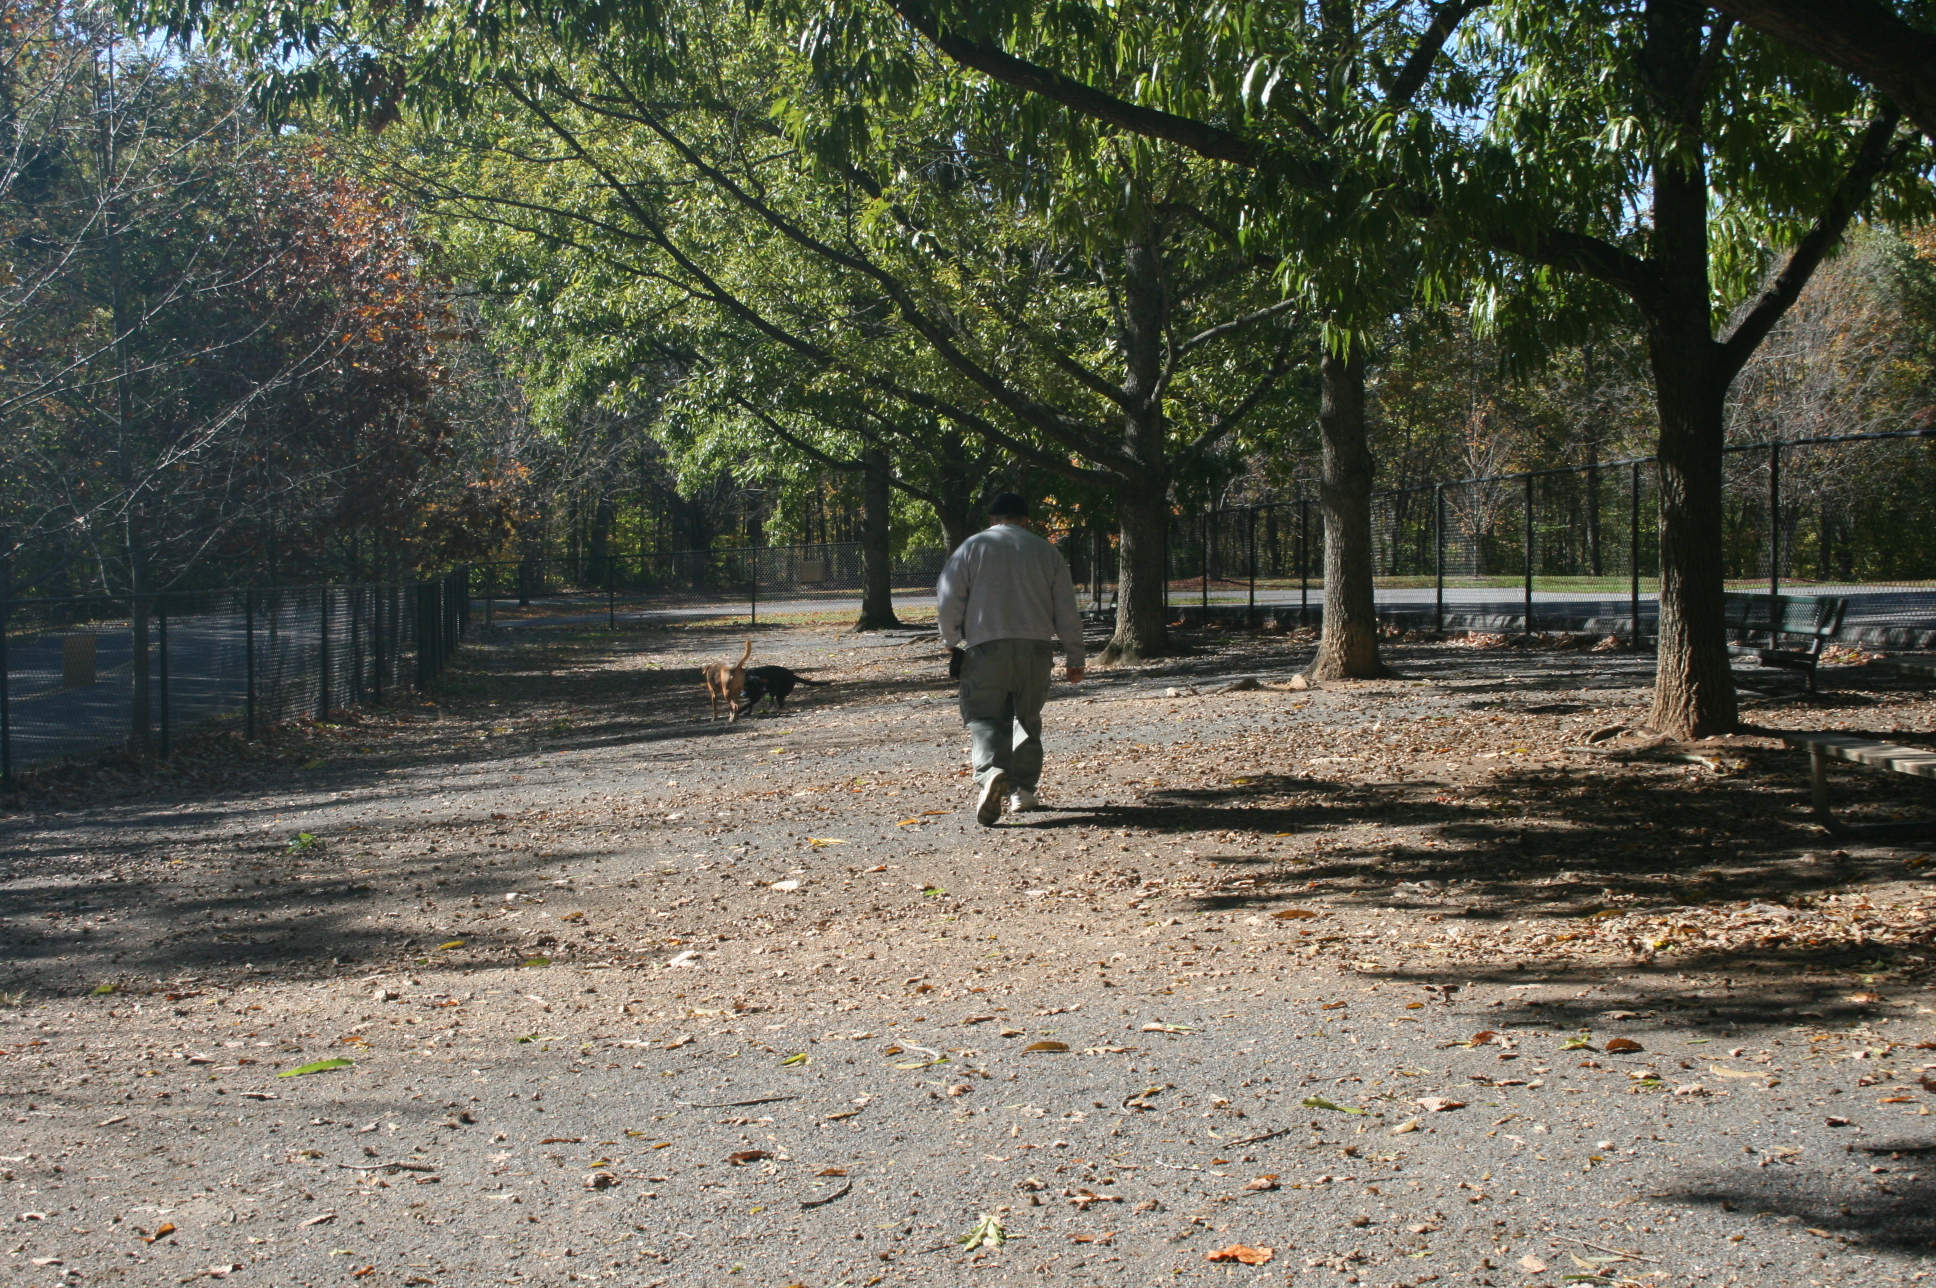 Off-leash area